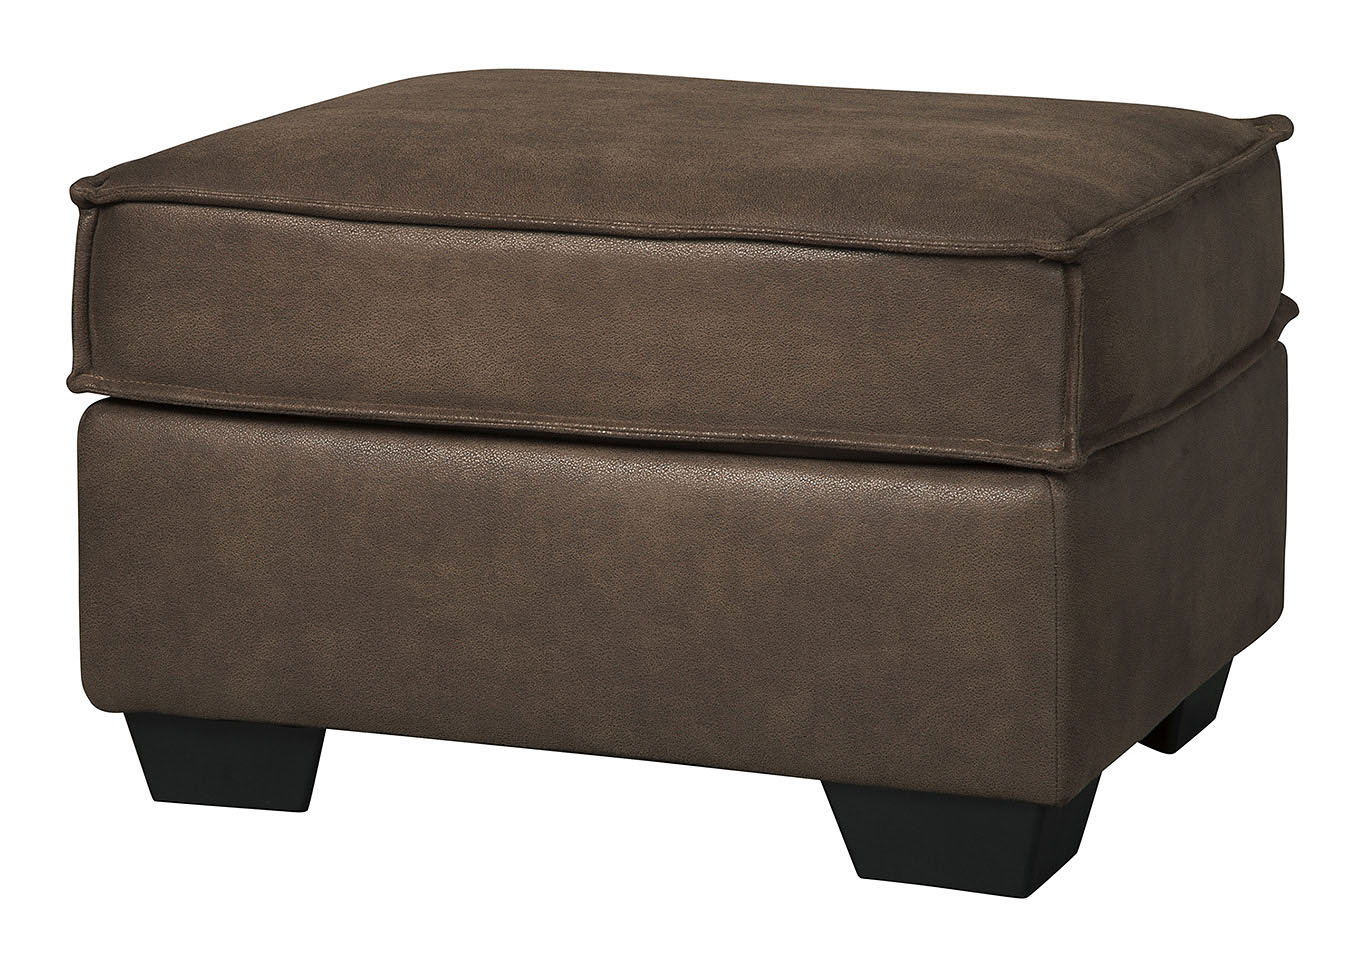 Terrington Harness Ottoman,Signature Design by Ashley